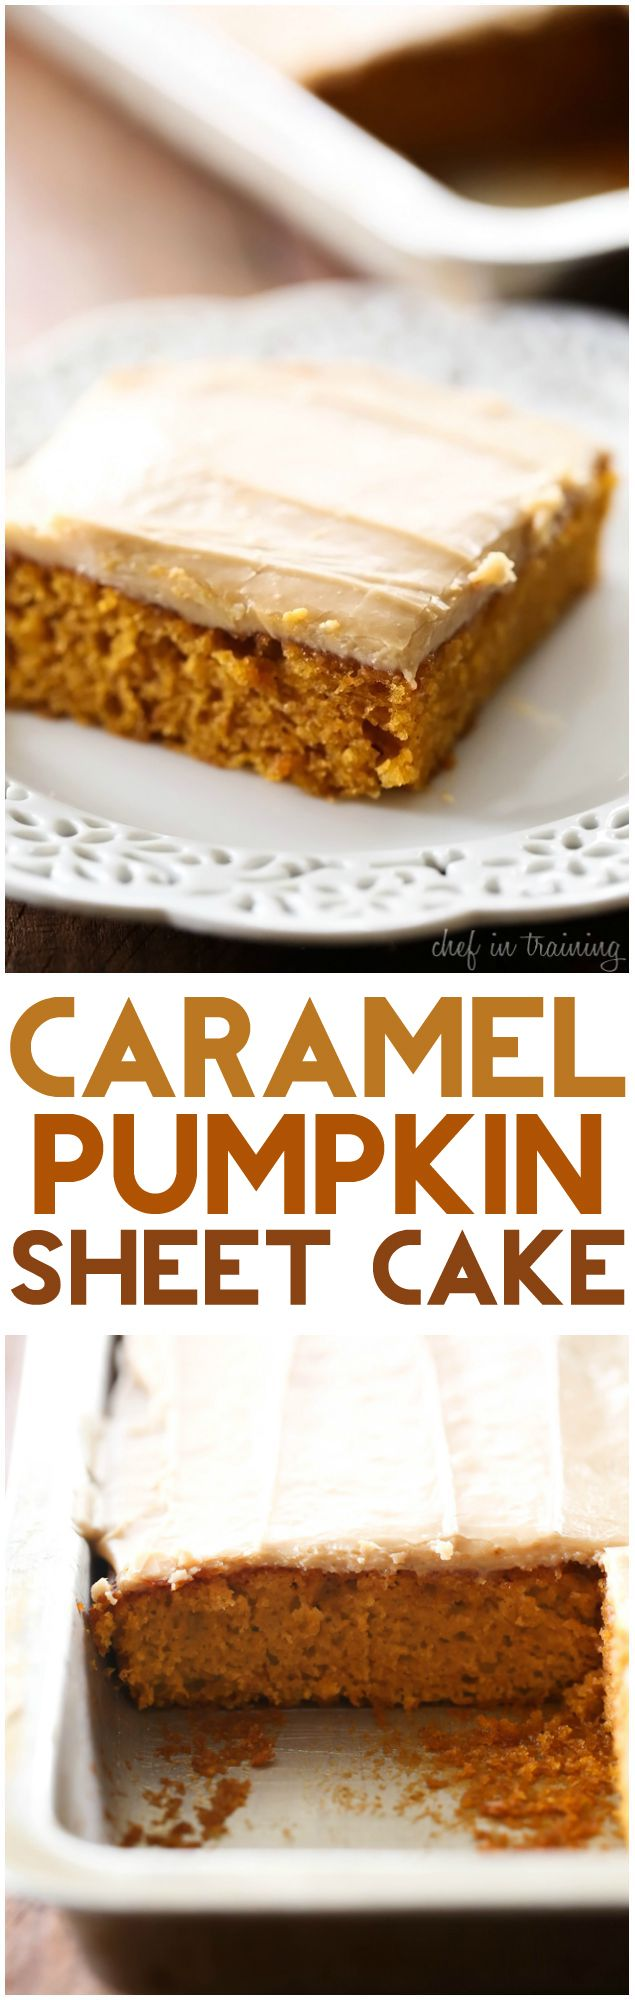 Caramel Pumpkin Sheet Cake... This will be the BEST dessert you make this fall! The caramel-pumpkin combination is HEAVENLY! The cake is so moist and the caramel frosting is the perfect finishing touch!